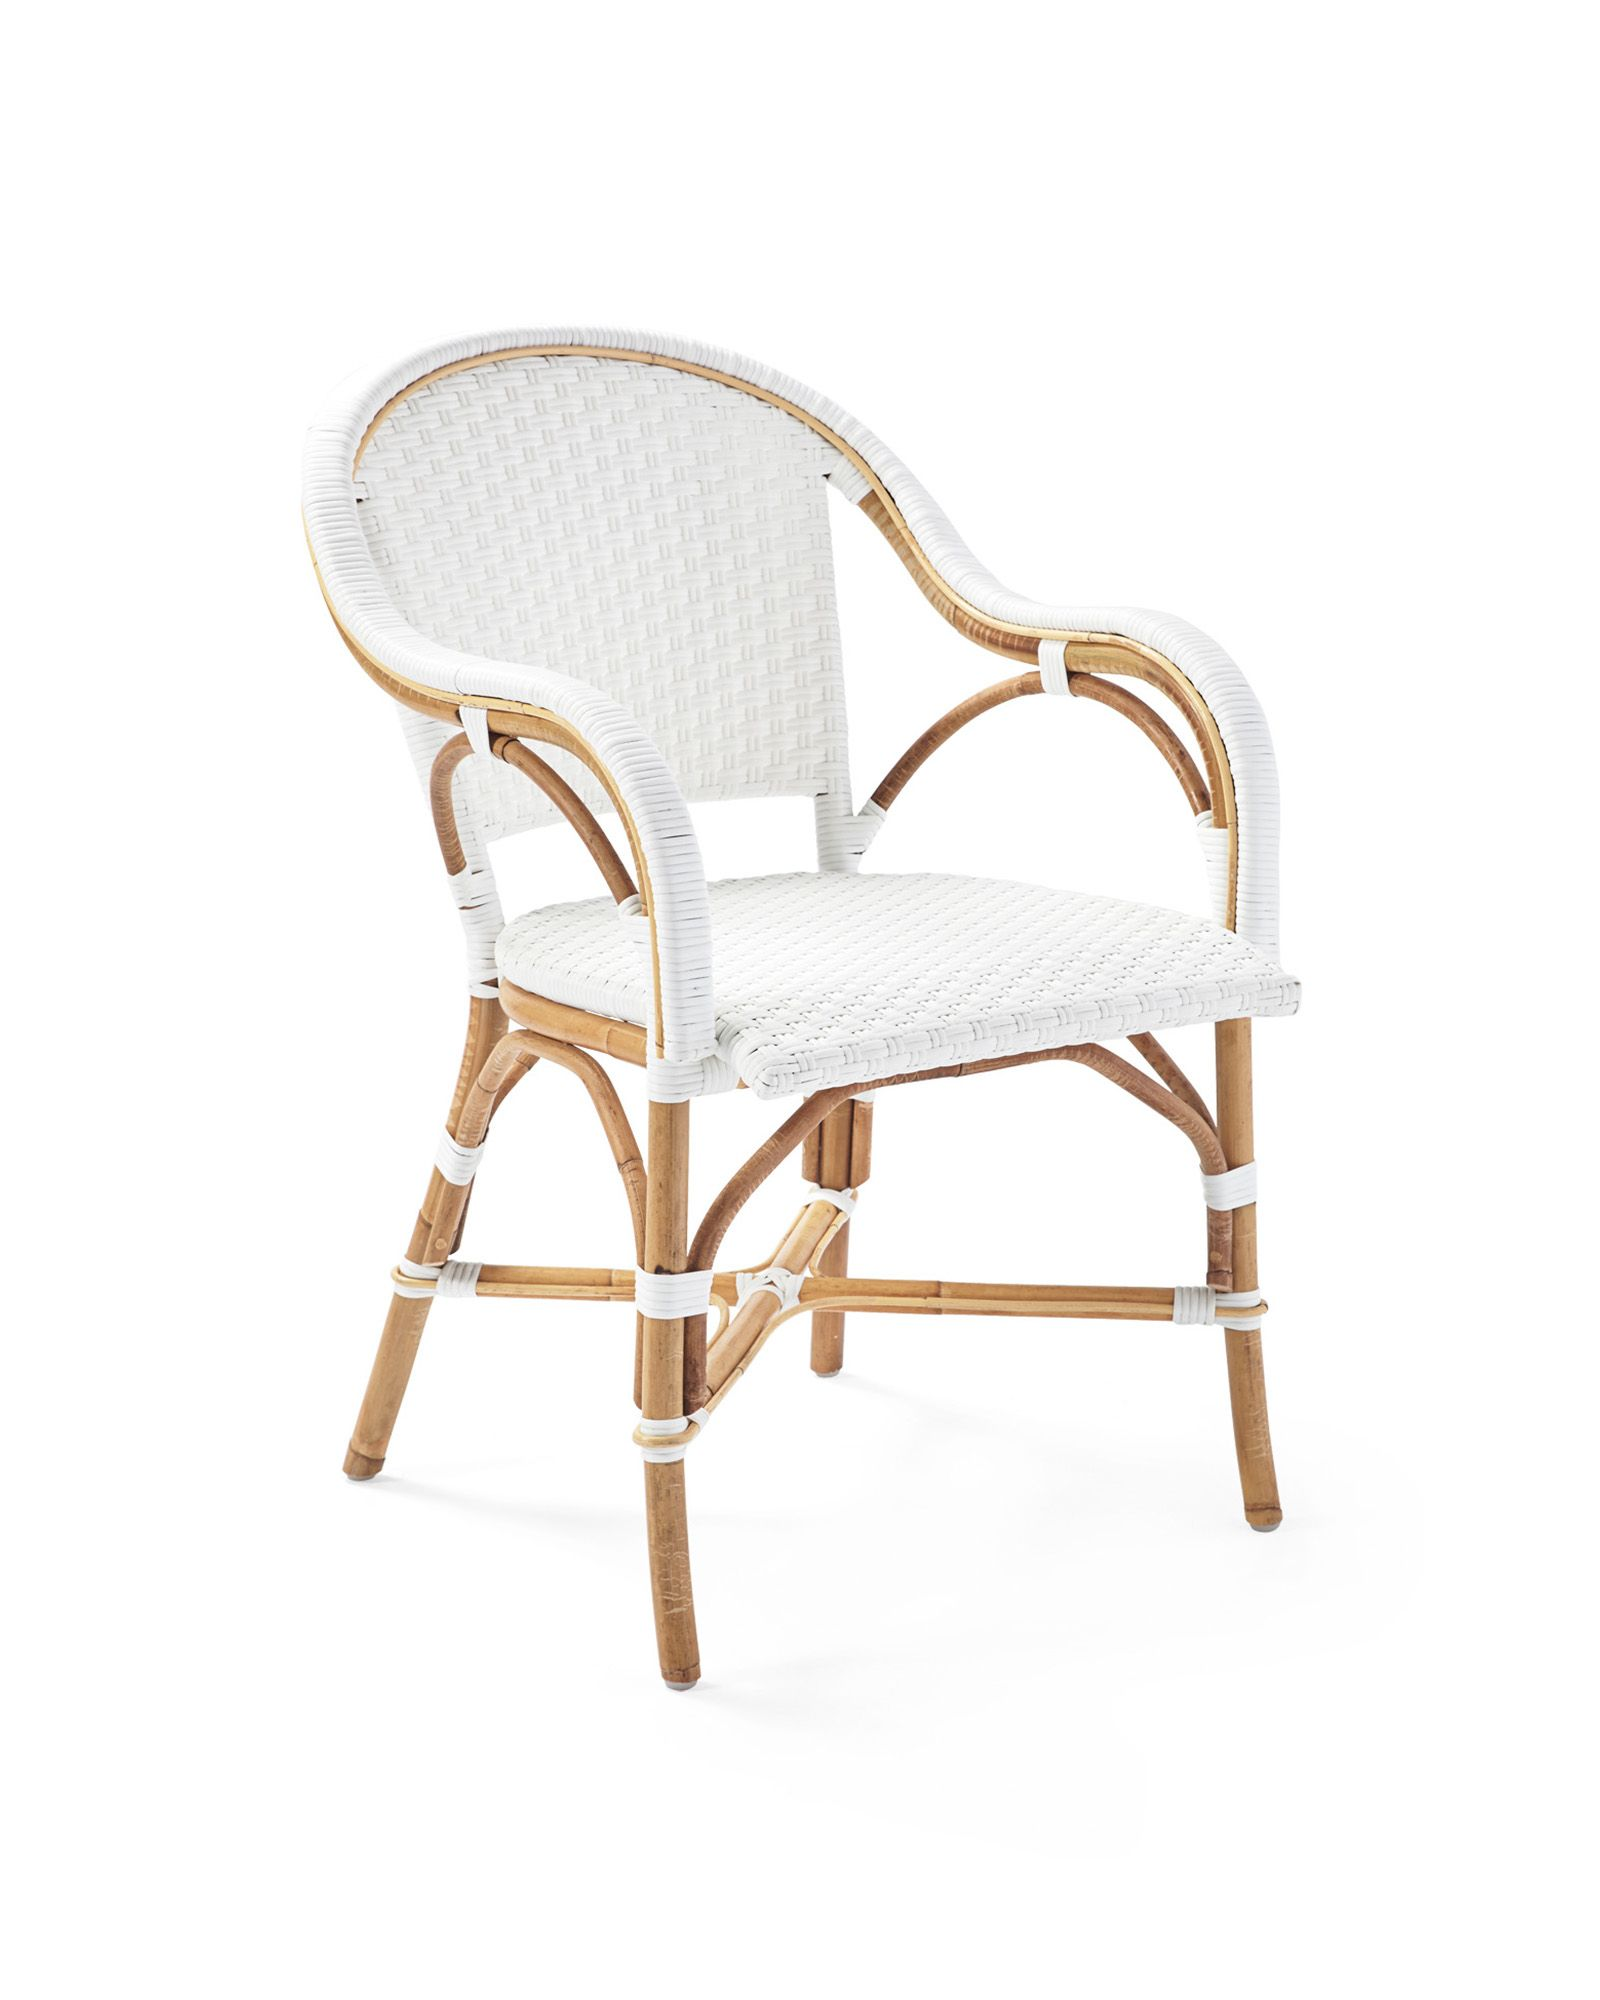 The classic 1930s european bistro chair reinterpreted handcrafted of lightweight rattan and woven plastic seats our take is fabulously family friendly